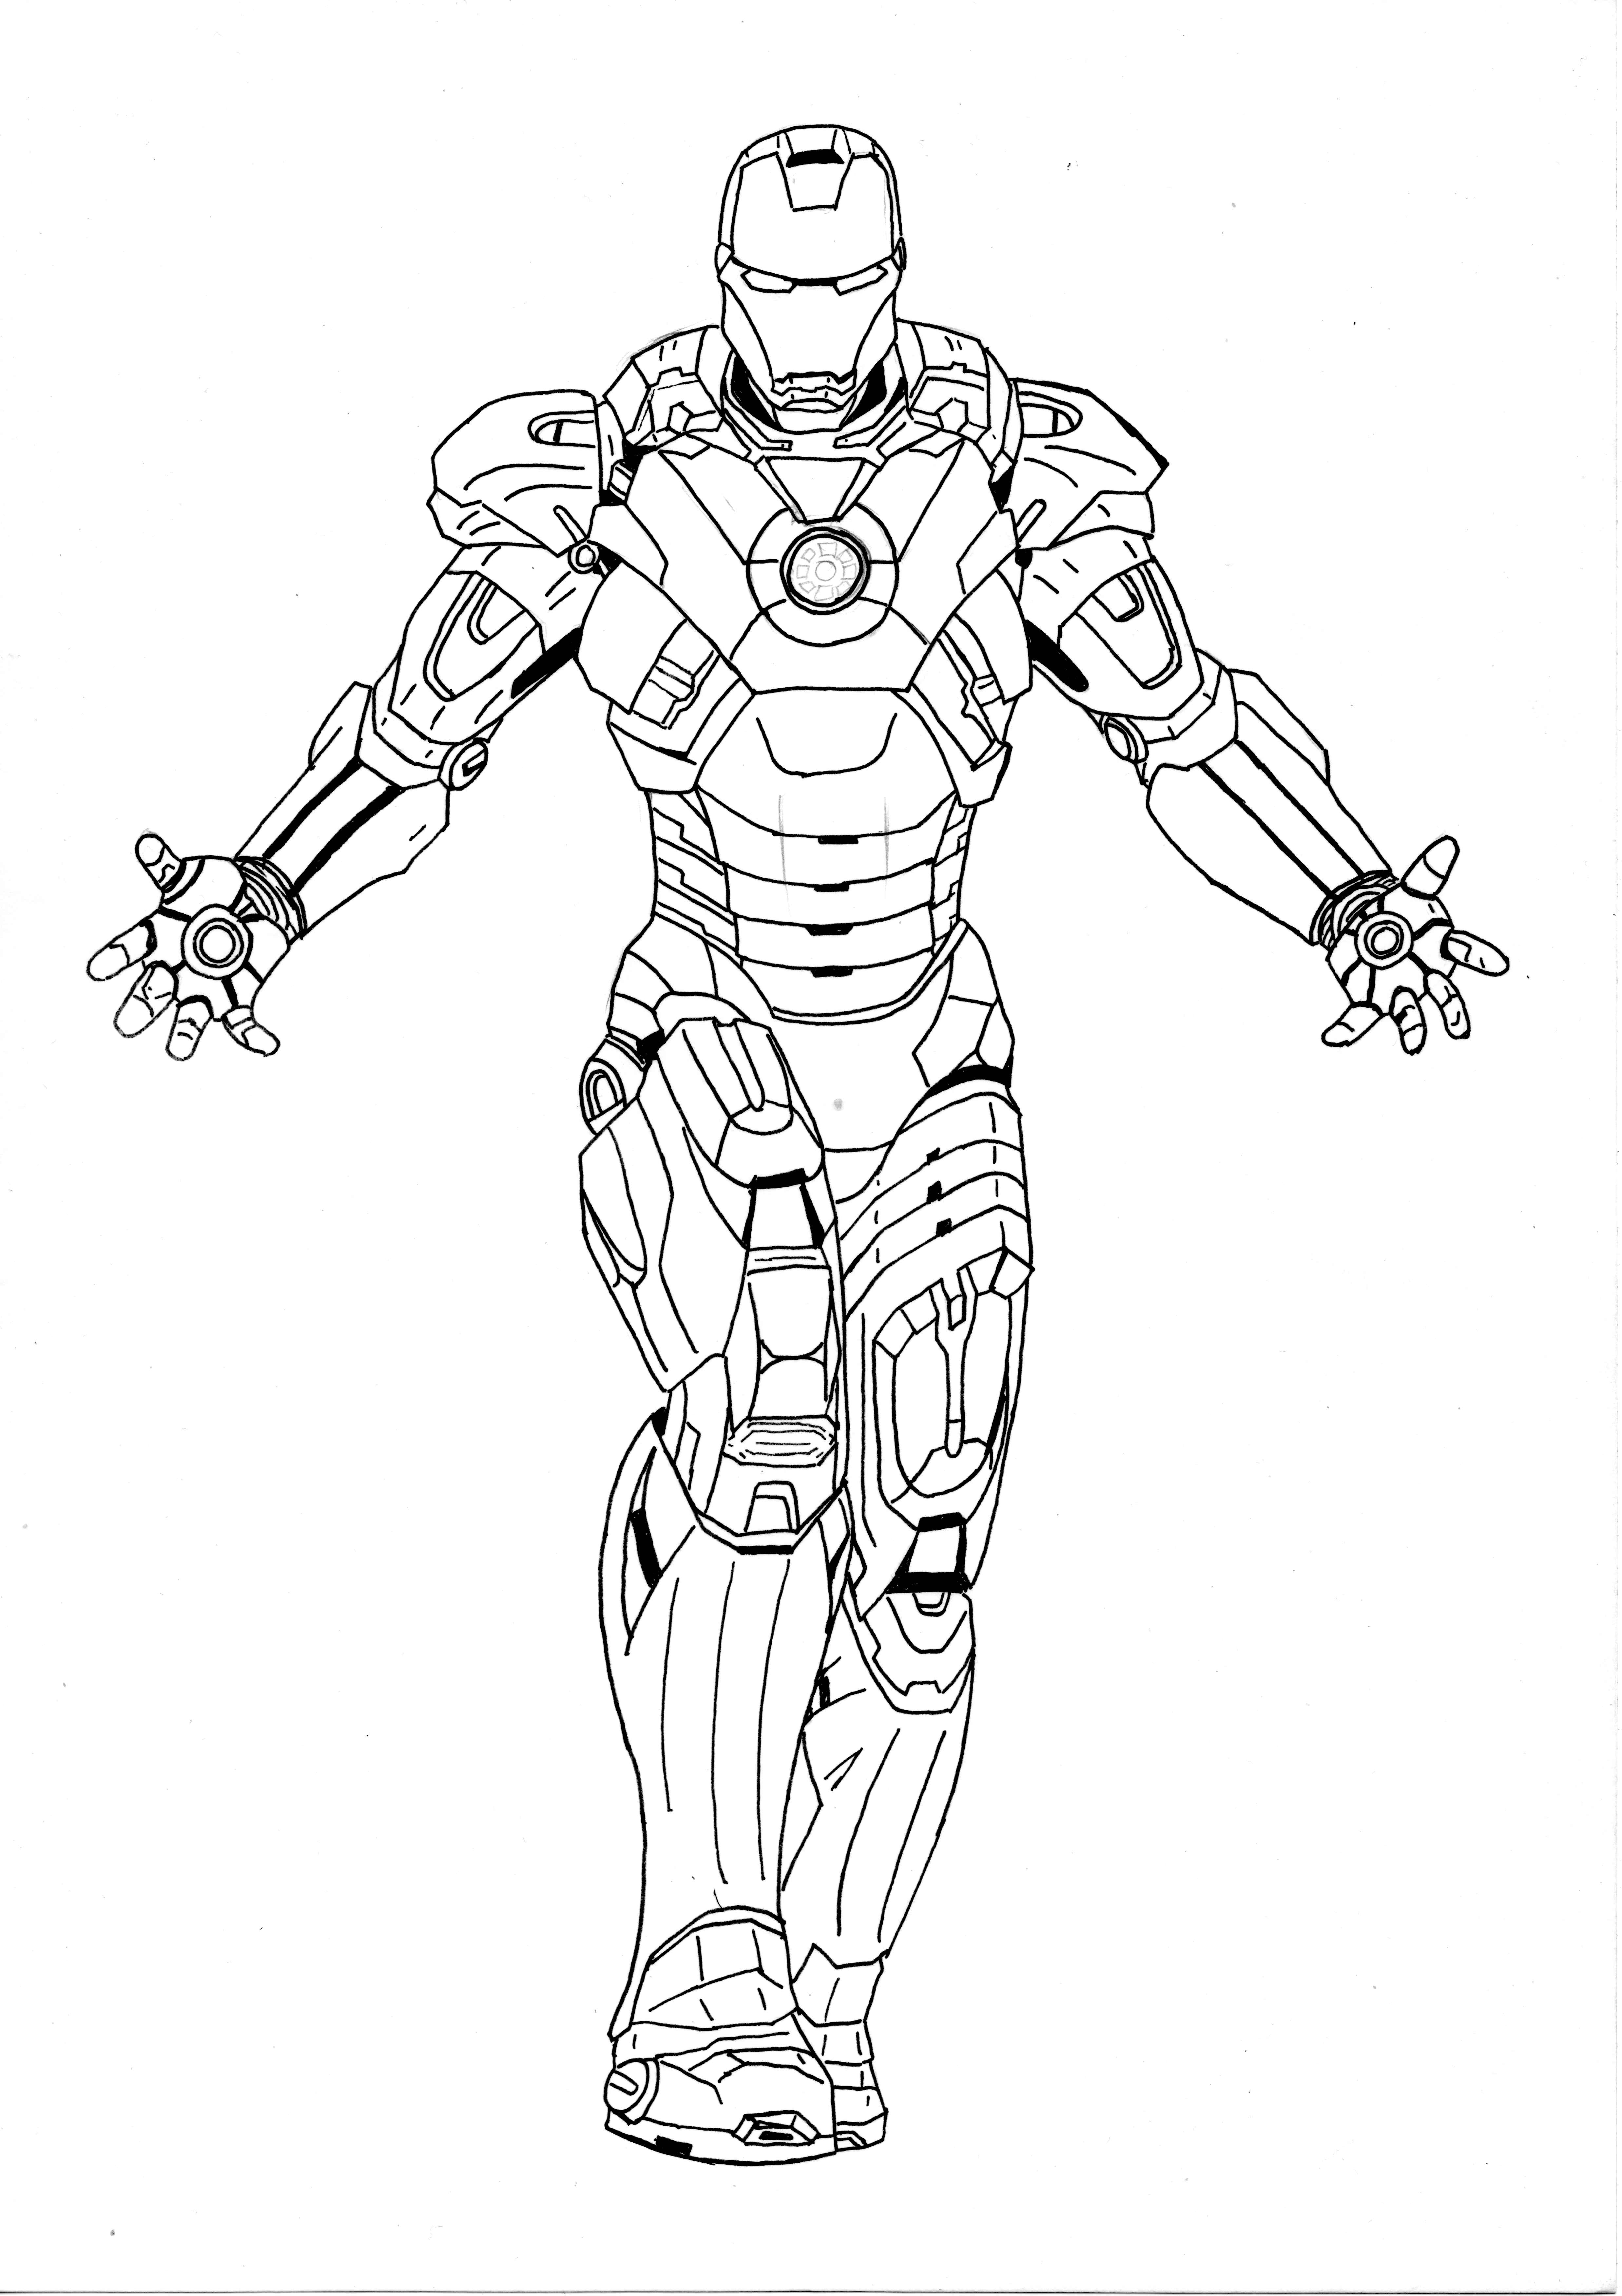 iron man outline drawing man outline drawing at paintingvalleycom explore outline drawing iron man